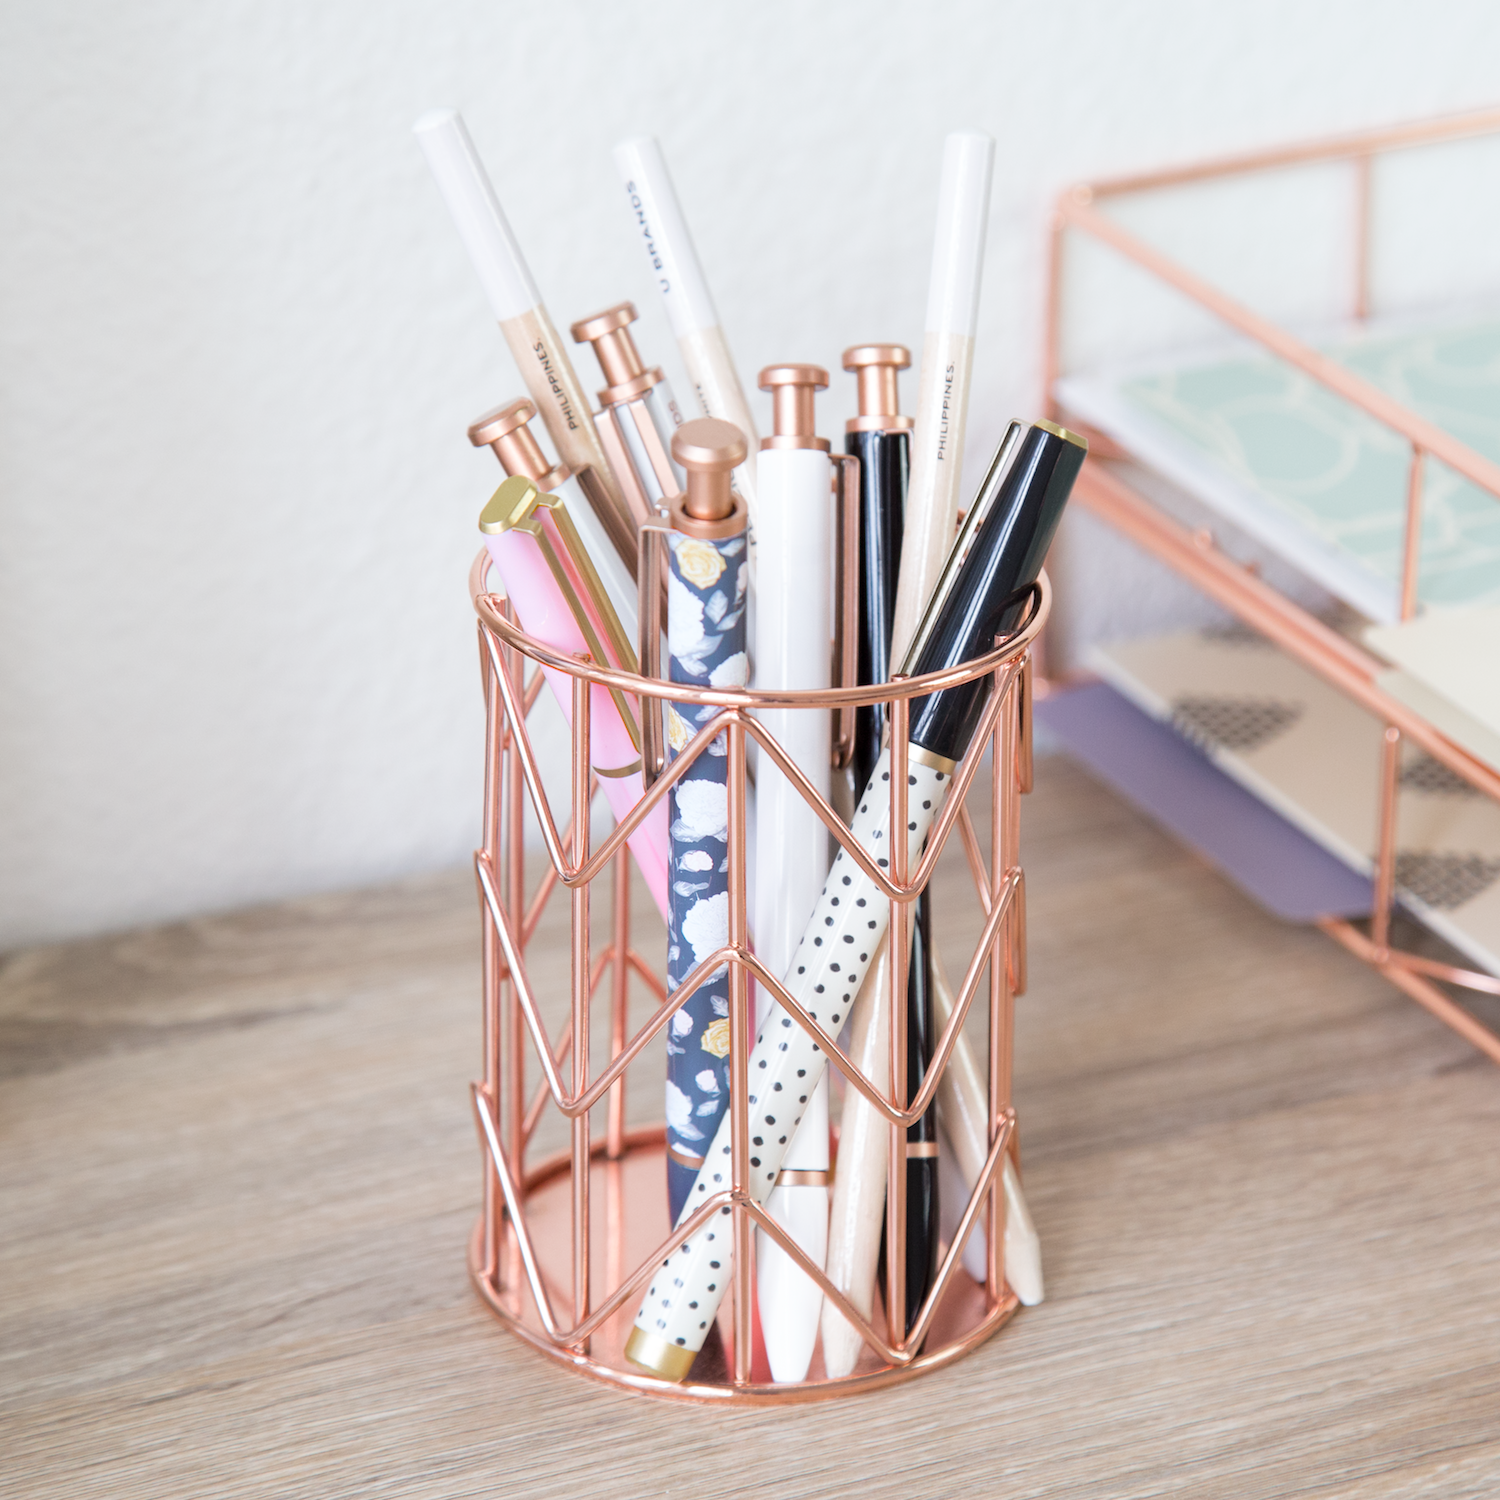 An open rose gold pencil cup with pencils in it